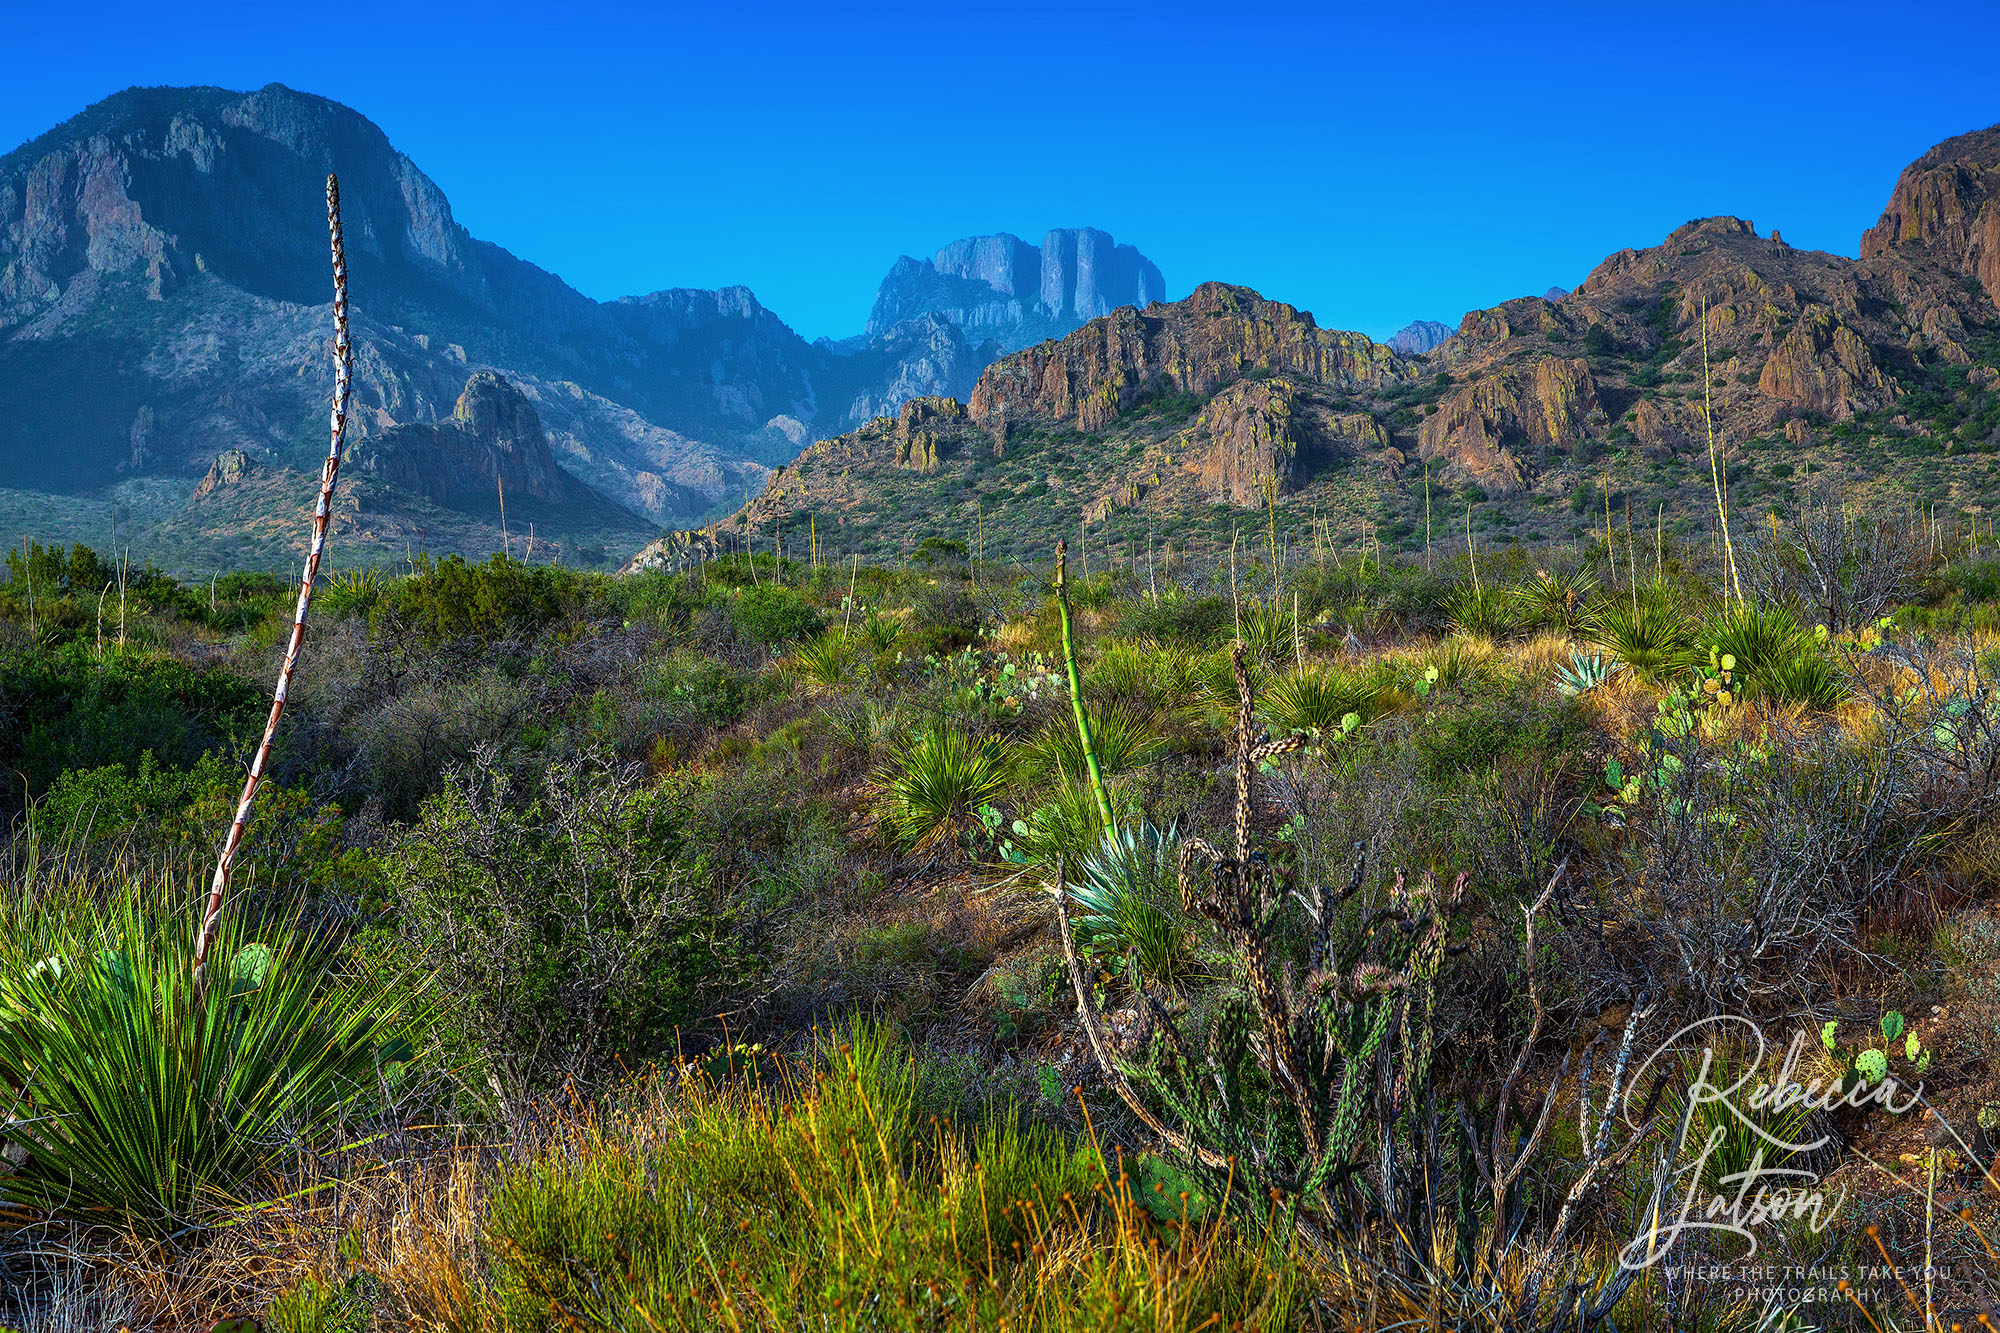 Morning View of Big Bend Scenery